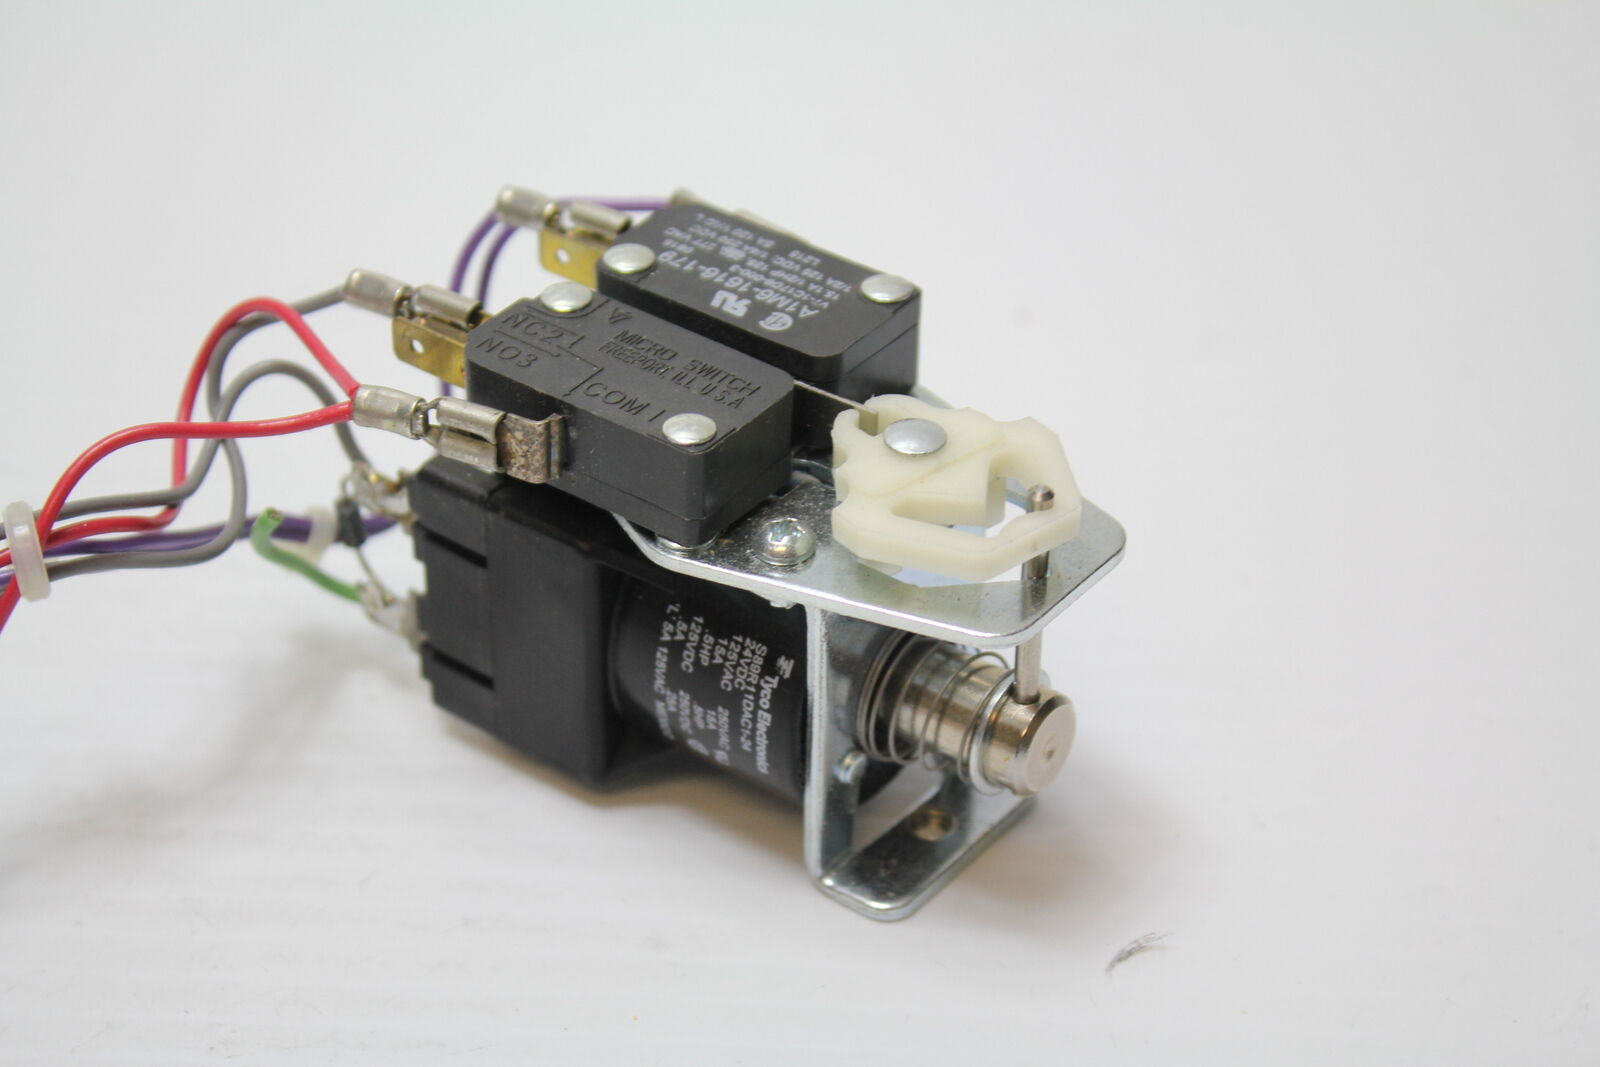 Laser Entfernungsmesser Oem : Tyco electronis 24v power relay 24 vdc 15 a used s89r11dac1